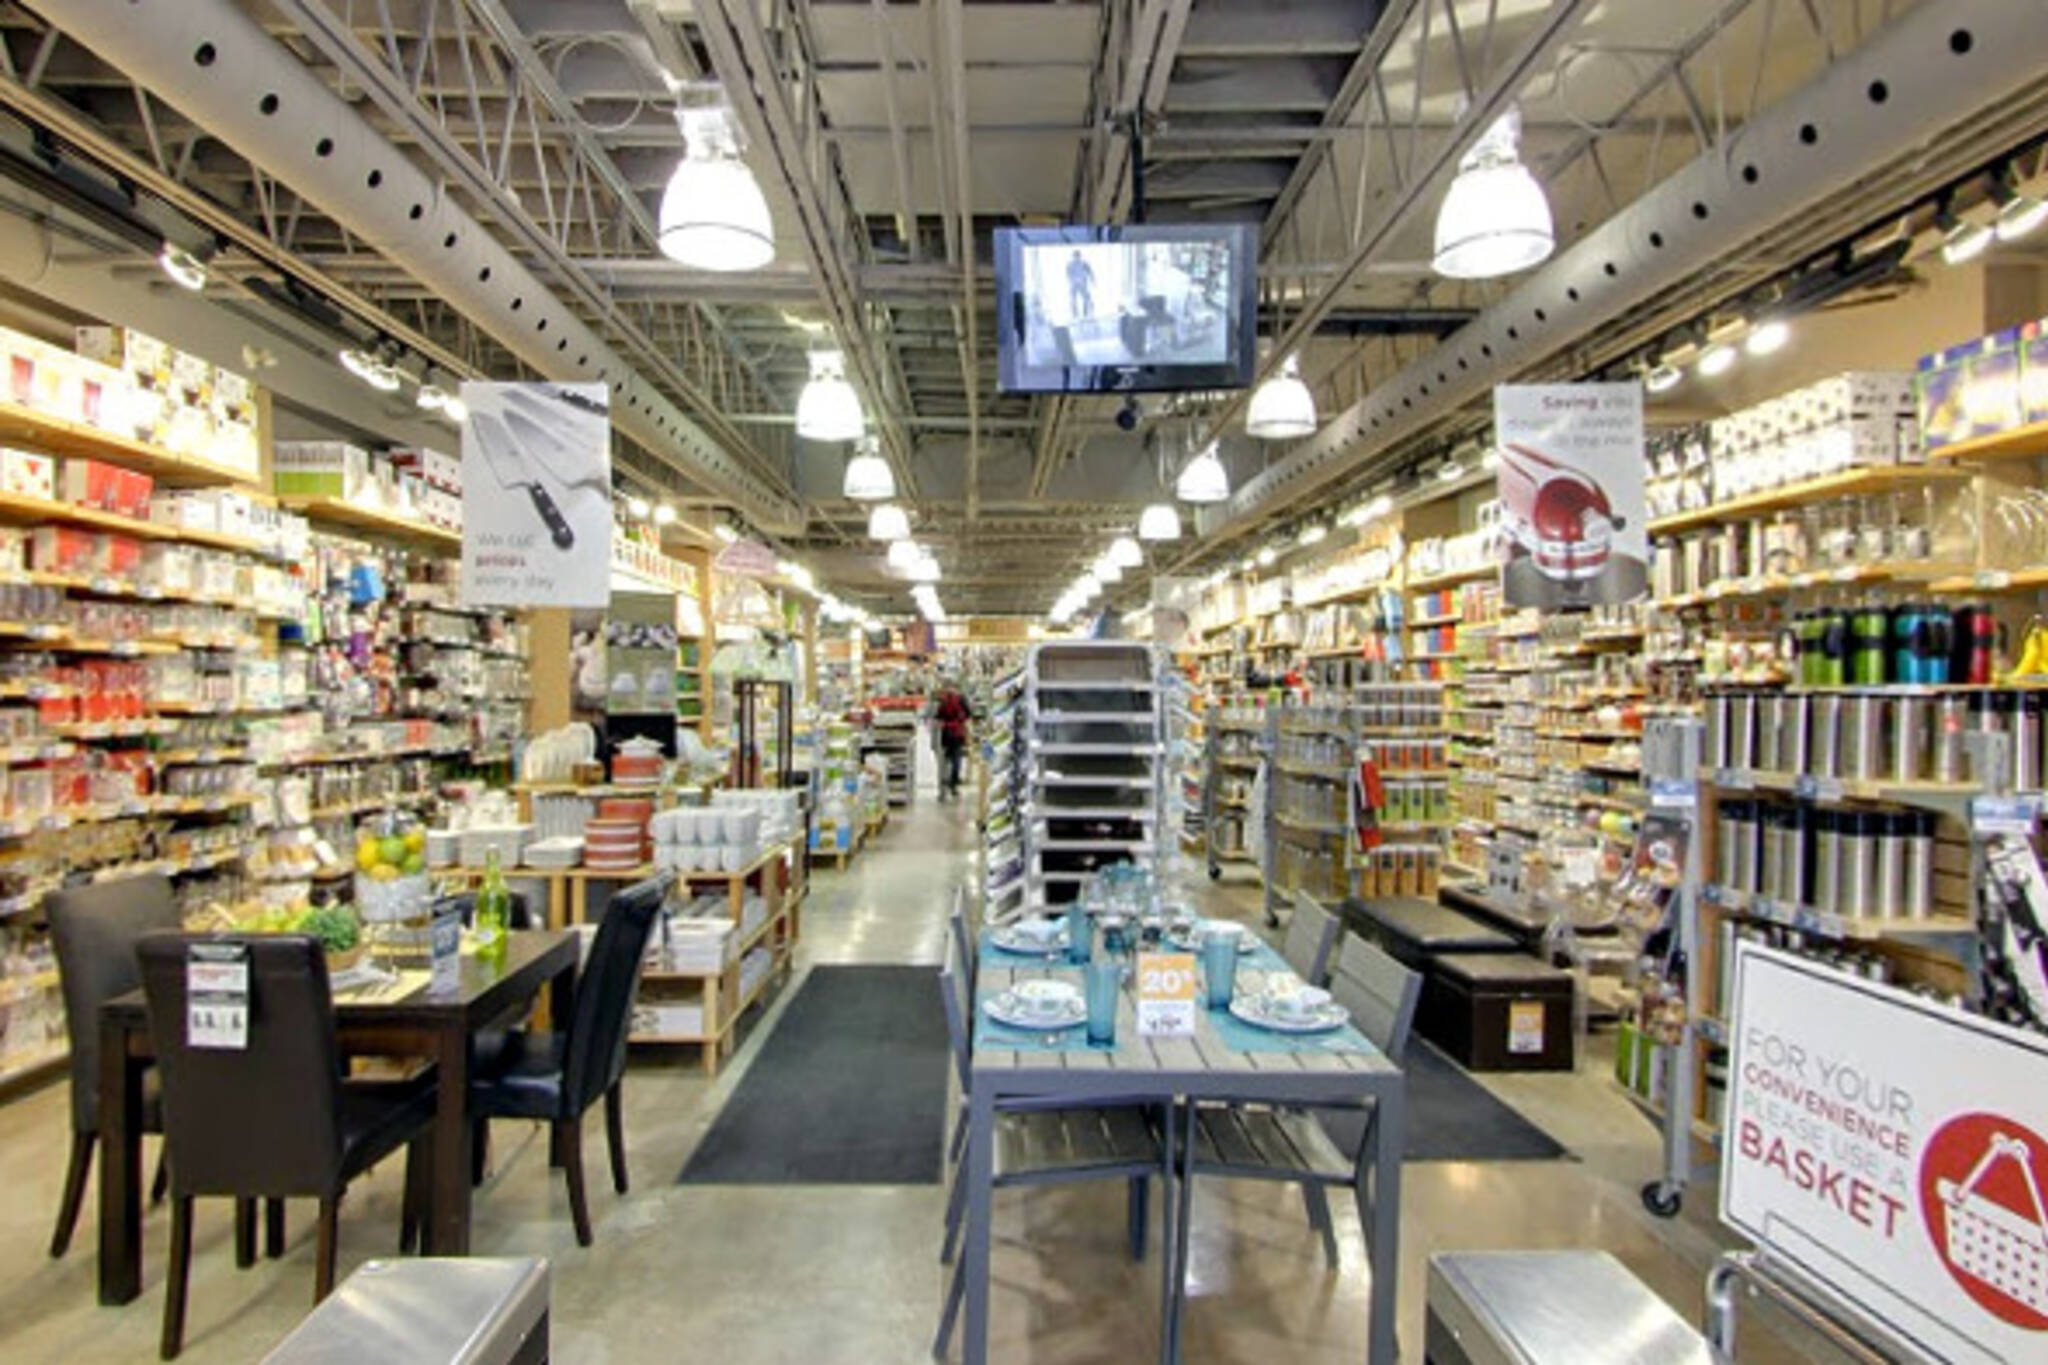 Restaurant Kitchen Supply Stores Toronto